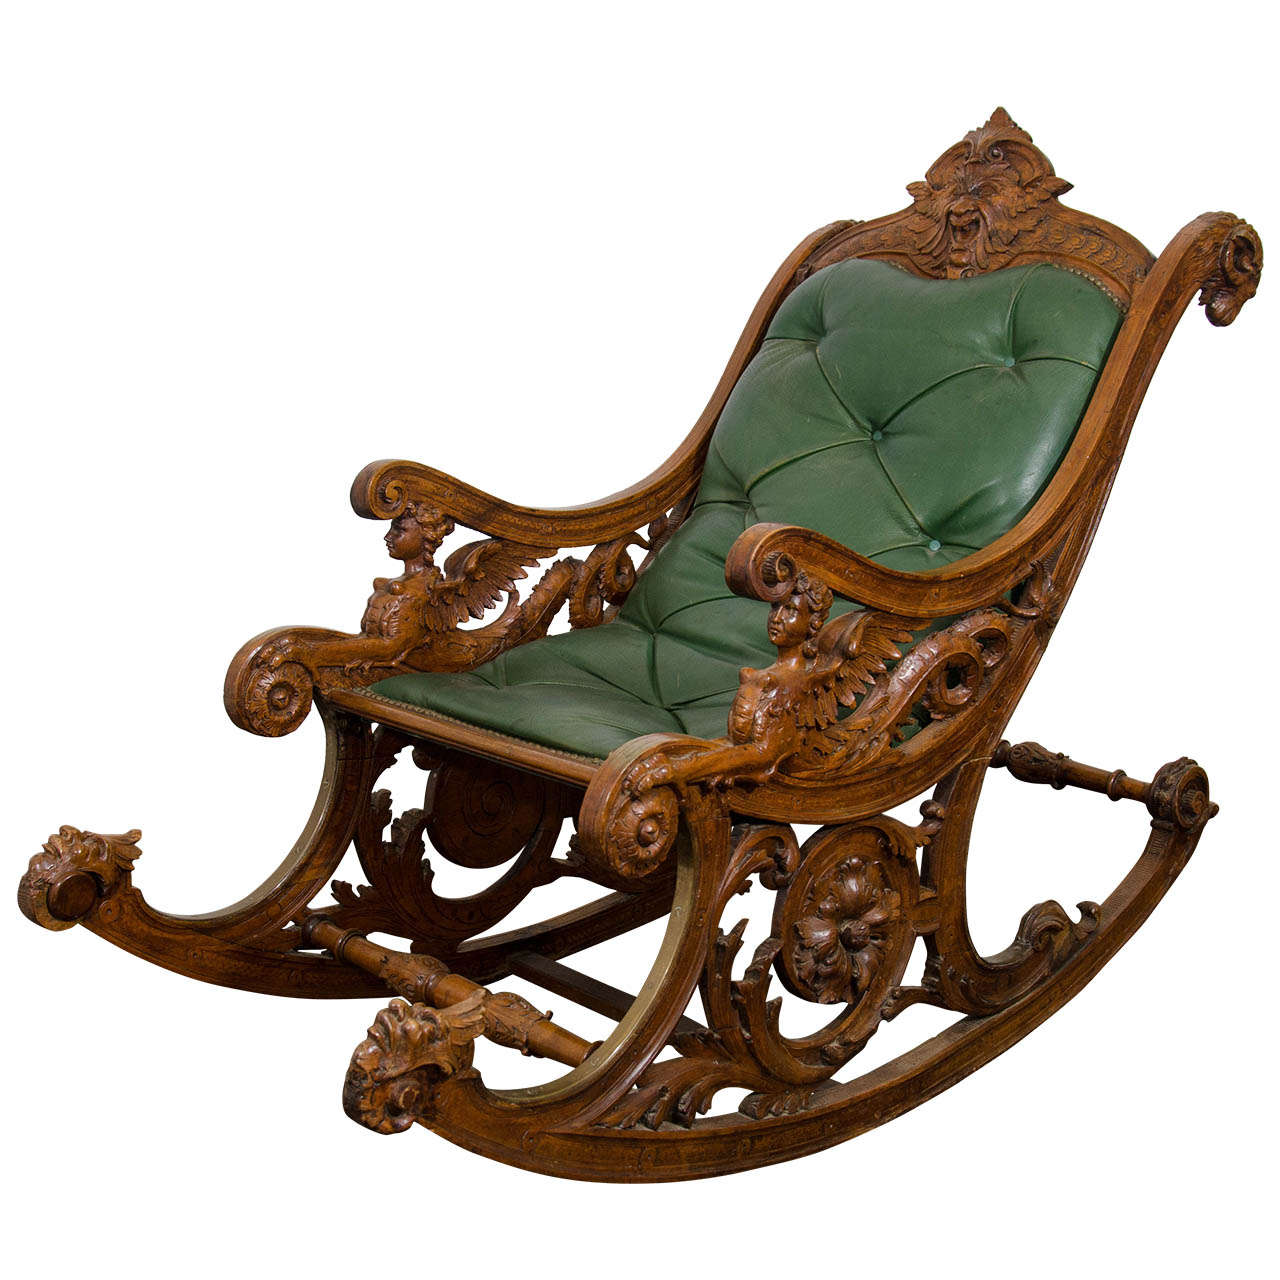 A 19th Century Carved Italian Rocking Chair w/Griffins & Rams Heads 1 - A 19th Century Carved Italian Rocking Chair W/Griffins And Rams